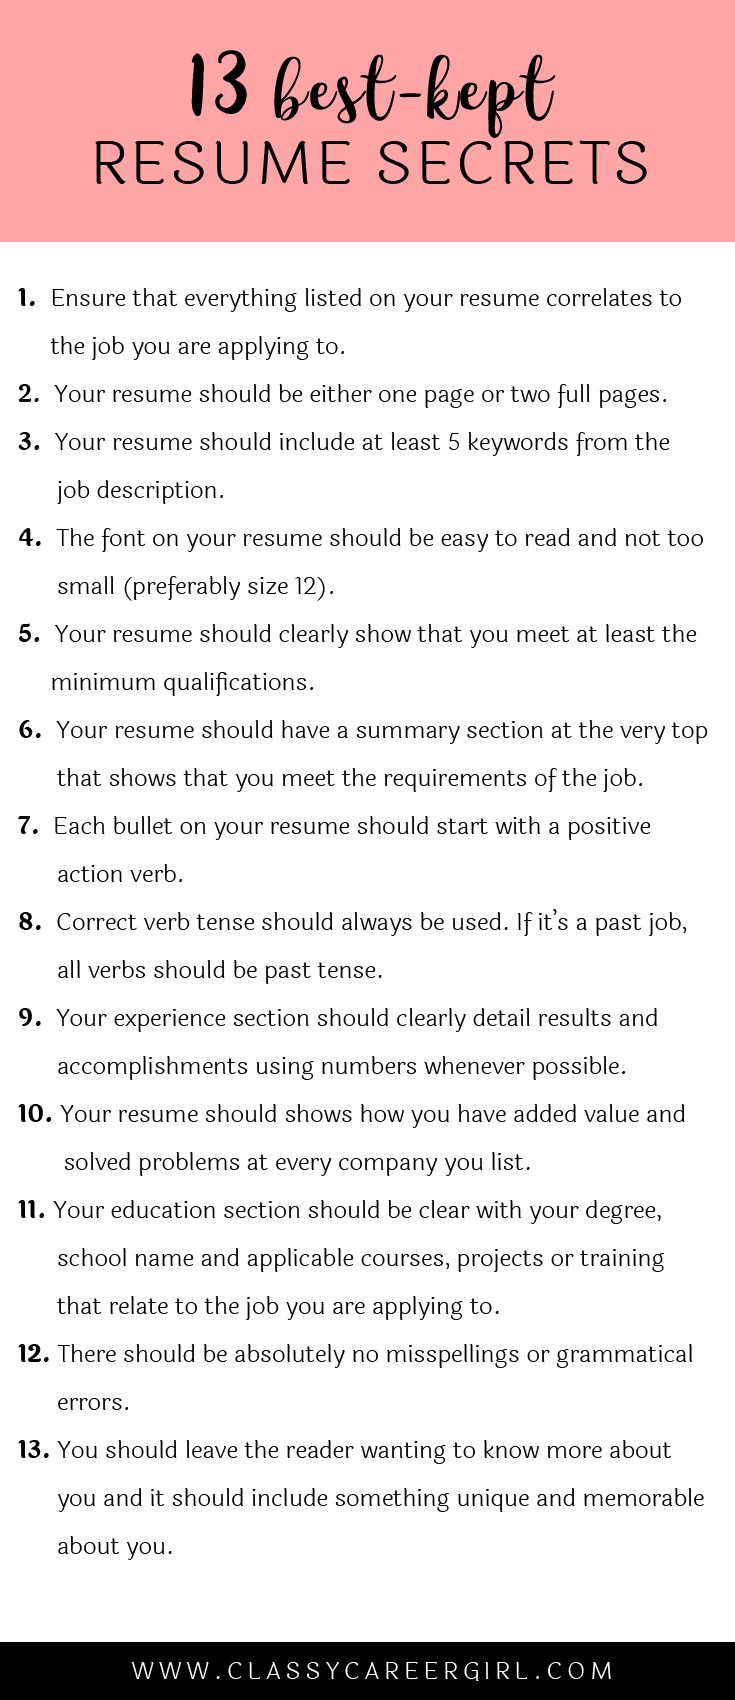 Opposenewapstandardsus  Sweet  Ideas About Resume On Pinterest  Cv Format Resume Cv And  With Goodlooking Some Hiring Managers Will Toss Your Resume Out If You Dont Know These  With Comely  Resume Template Also Resume Objective Teacher In Addition Project Analyst Resume And Job Resumes Templates As Well As Do Resumes Need References Additionally Sample New Grad Nursing Resume From Pinterestcom With Opposenewapstandardsus  Goodlooking  Ideas About Resume On Pinterest  Cv Format Resume Cv And  With Comely Some Hiring Managers Will Toss Your Resume Out If You Dont Know These  And Sweet  Resume Template Also Resume Objective Teacher In Addition Project Analyst Resume From Pinterestcom